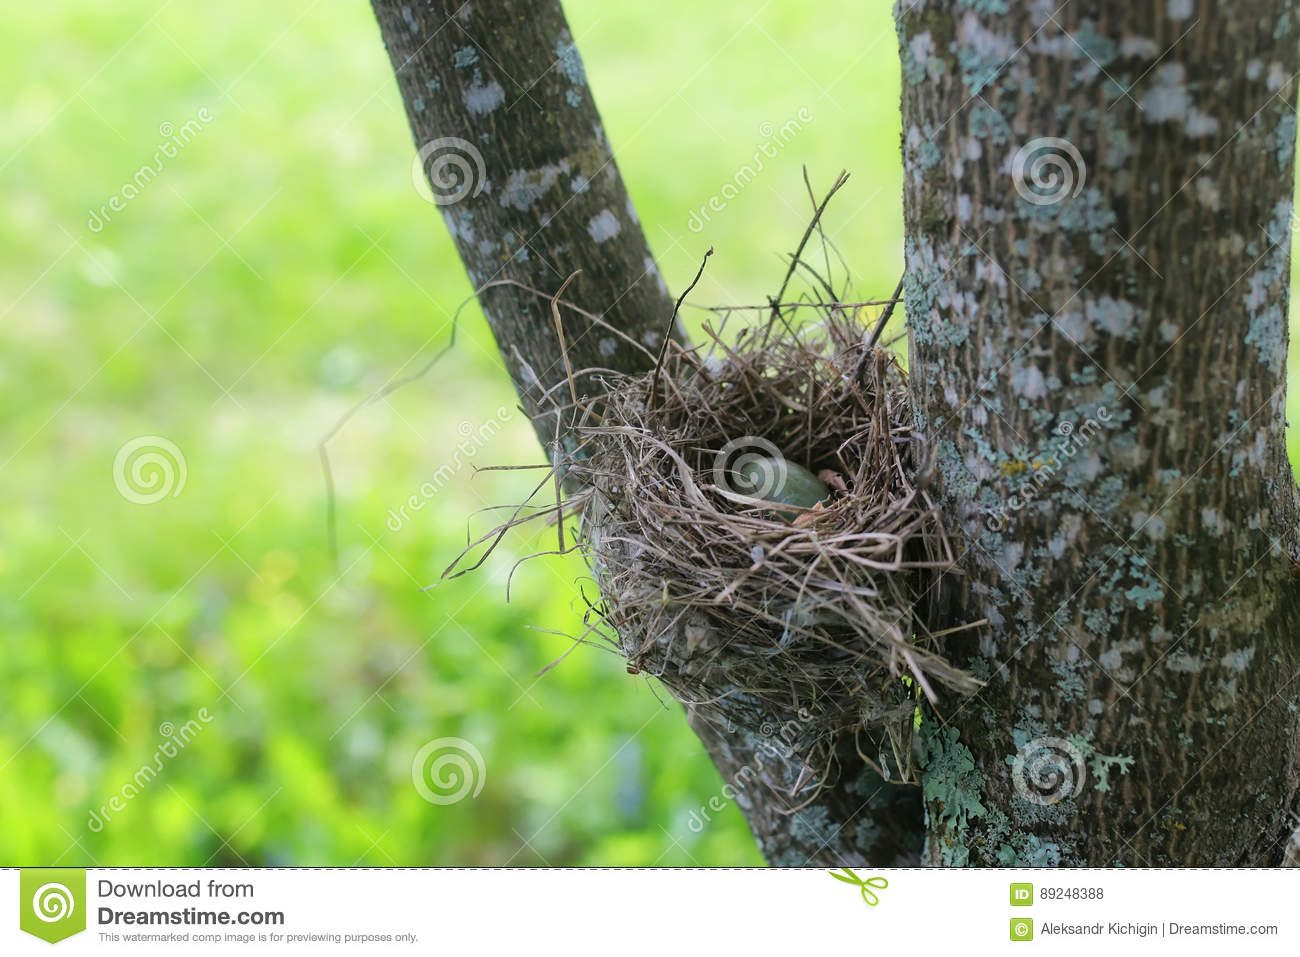 Bird nest in nature stock photo  Image of branch, brood